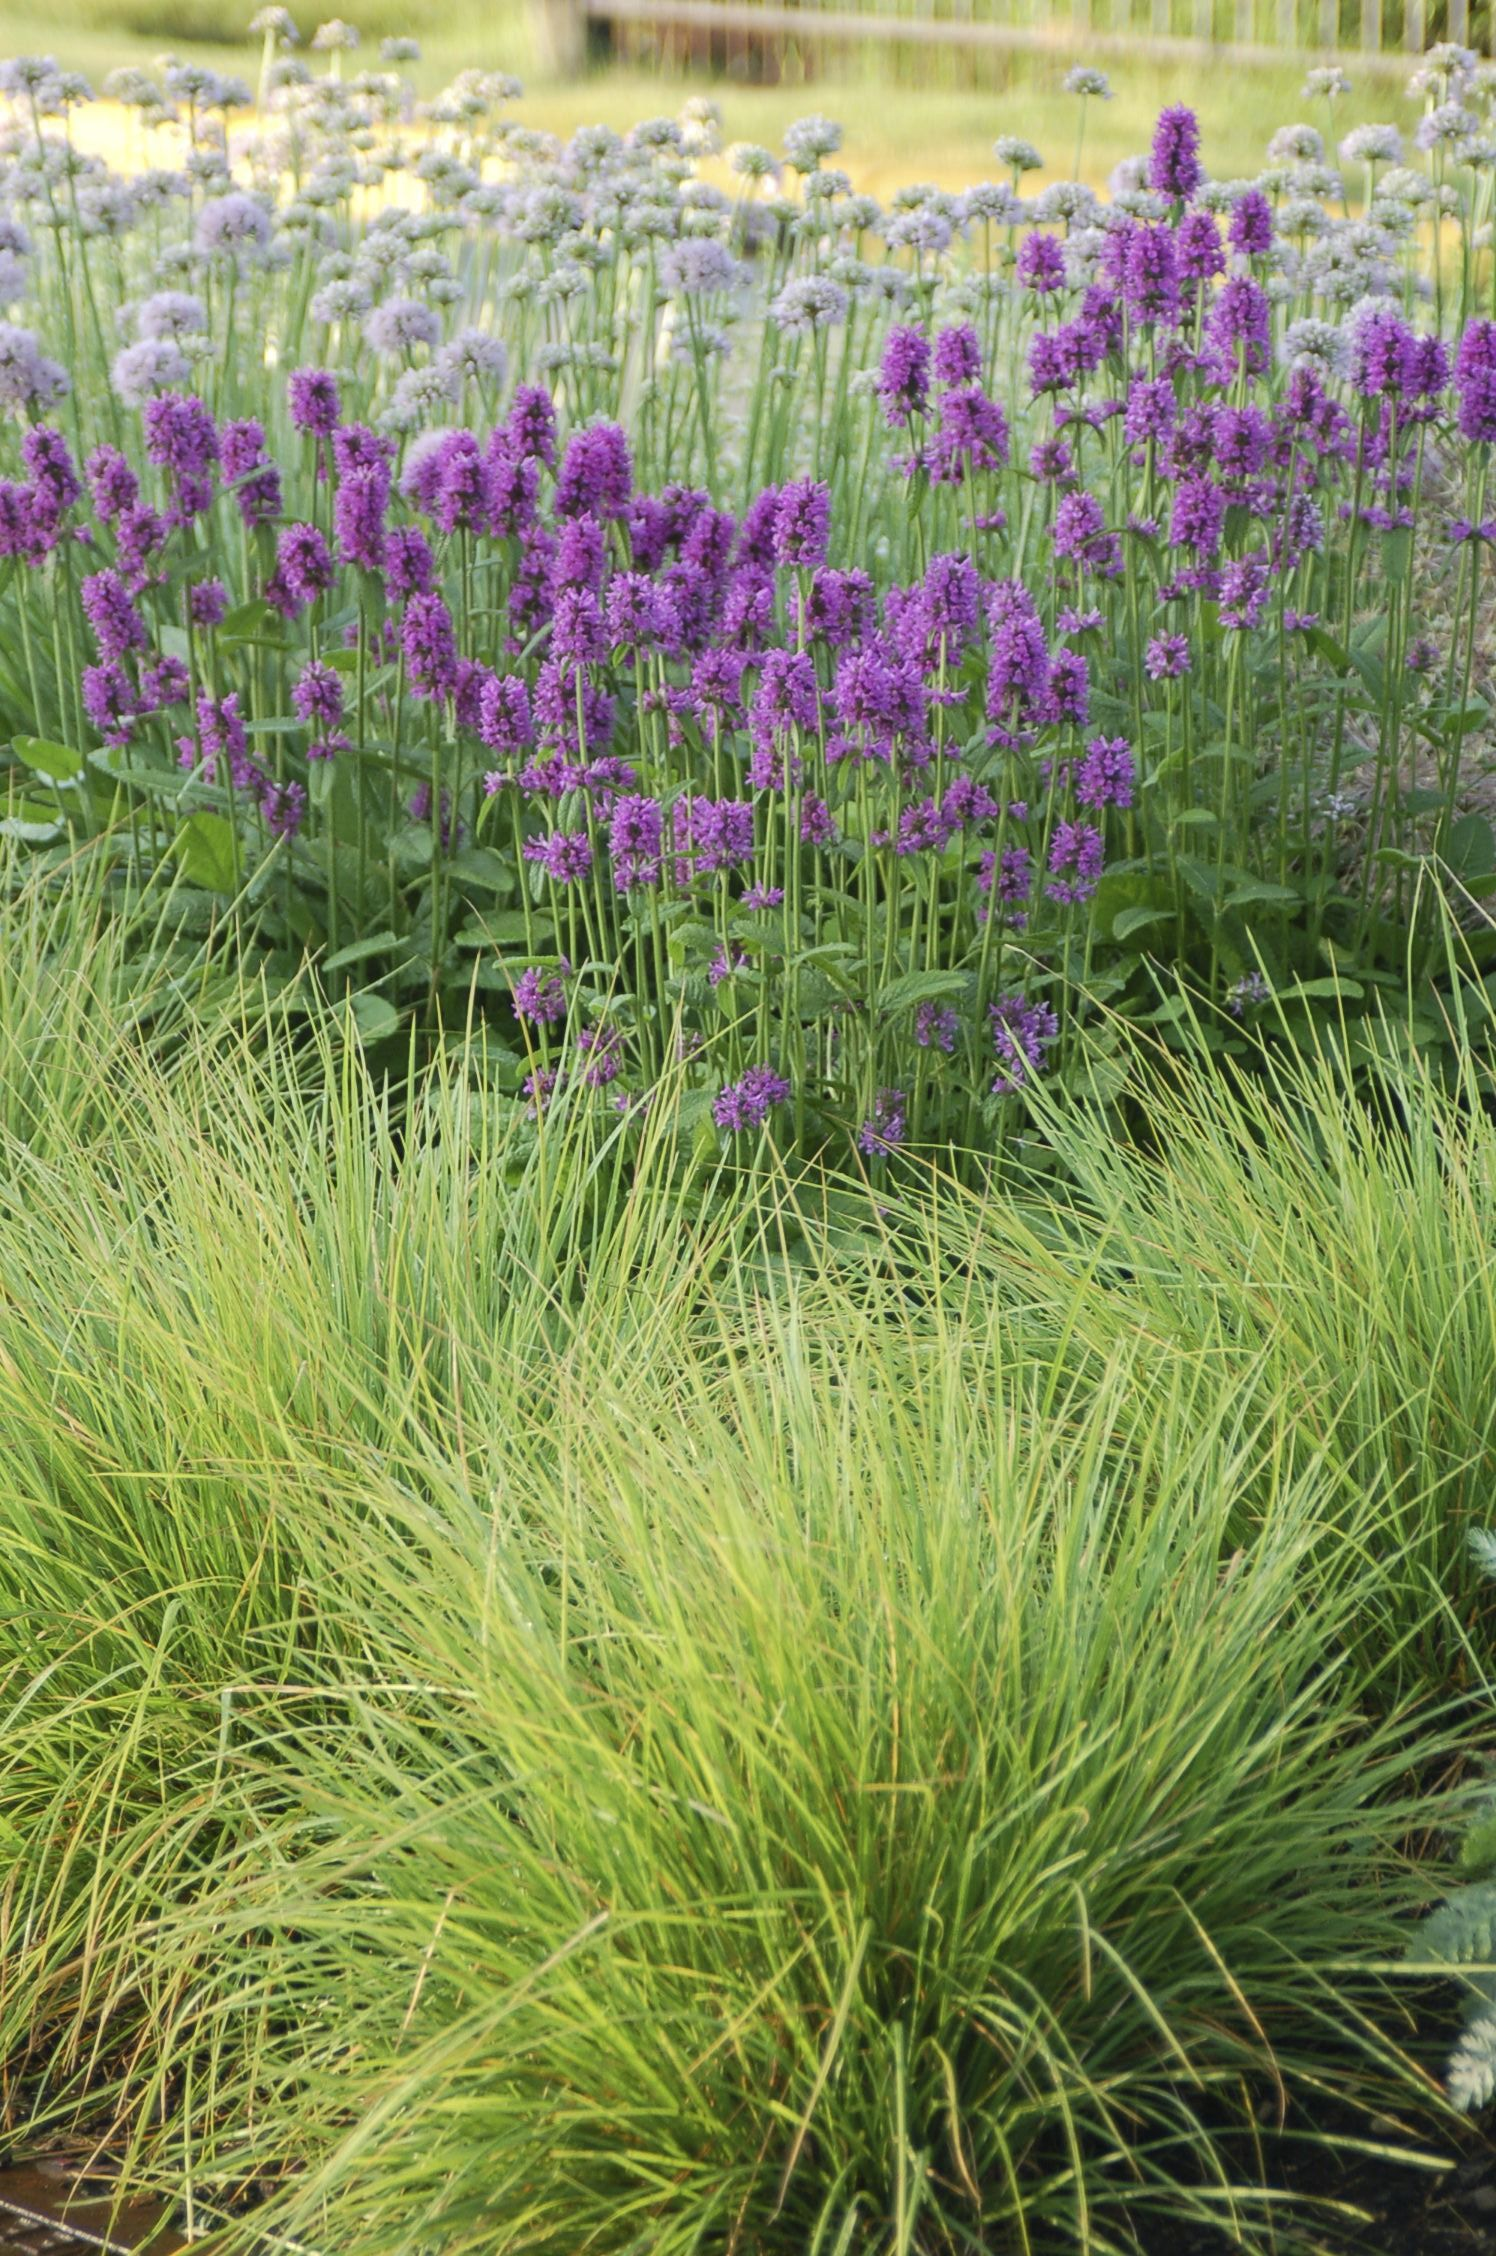 Sesleria Autumnalis Backed By The Rose Purple Spikes Of Stachys Officinalis Hummelo And The Lilac Globes Of Allium British Garden Plants Ornamental Grasses